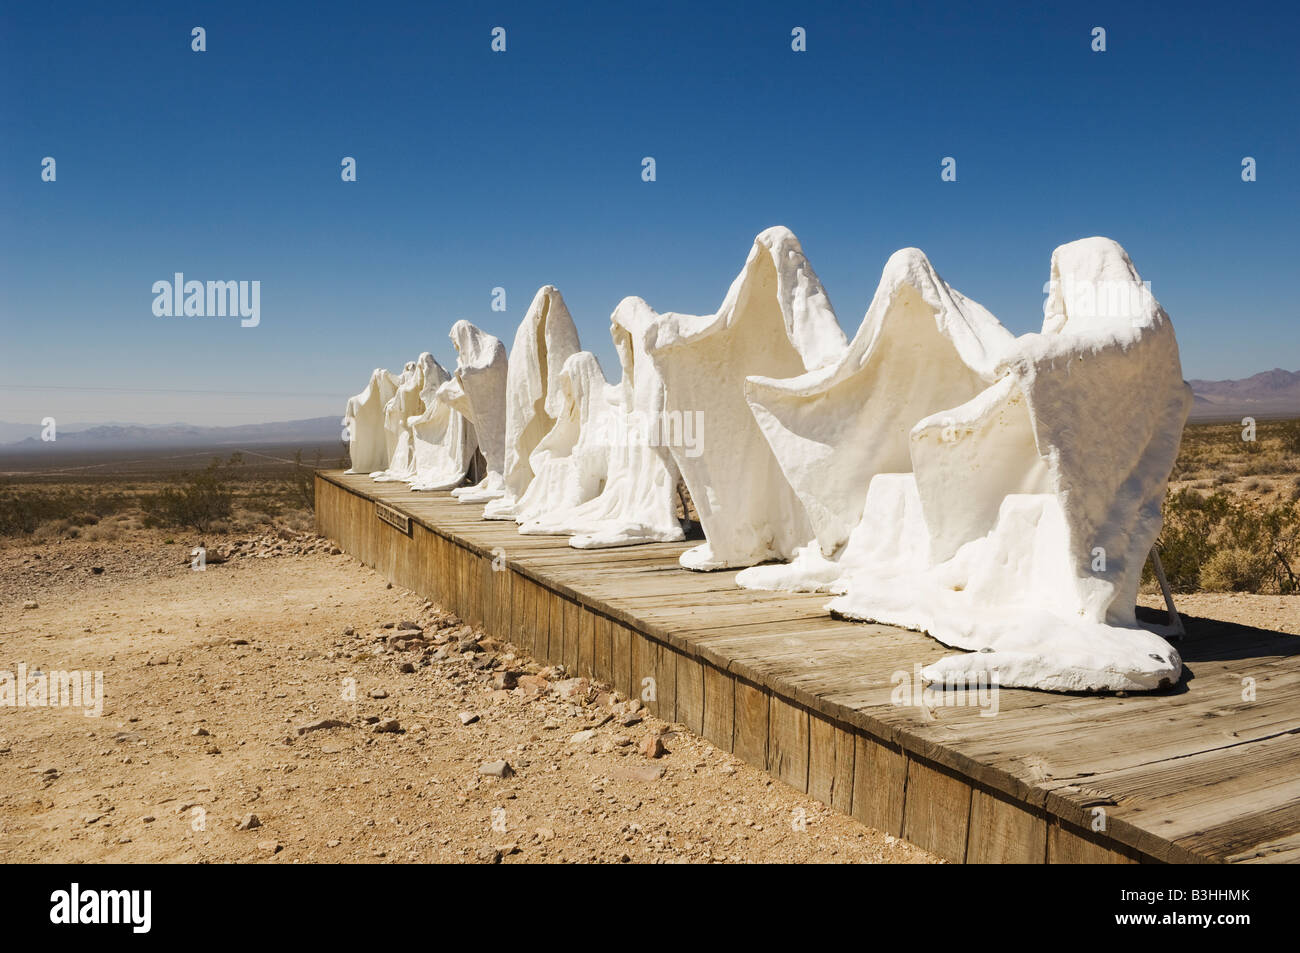 Sculpture 'The Last Supper' 1984 by Charles Albert Szukalski at the Goldwell Open Air Museum in Rhyolite, - Stock Image